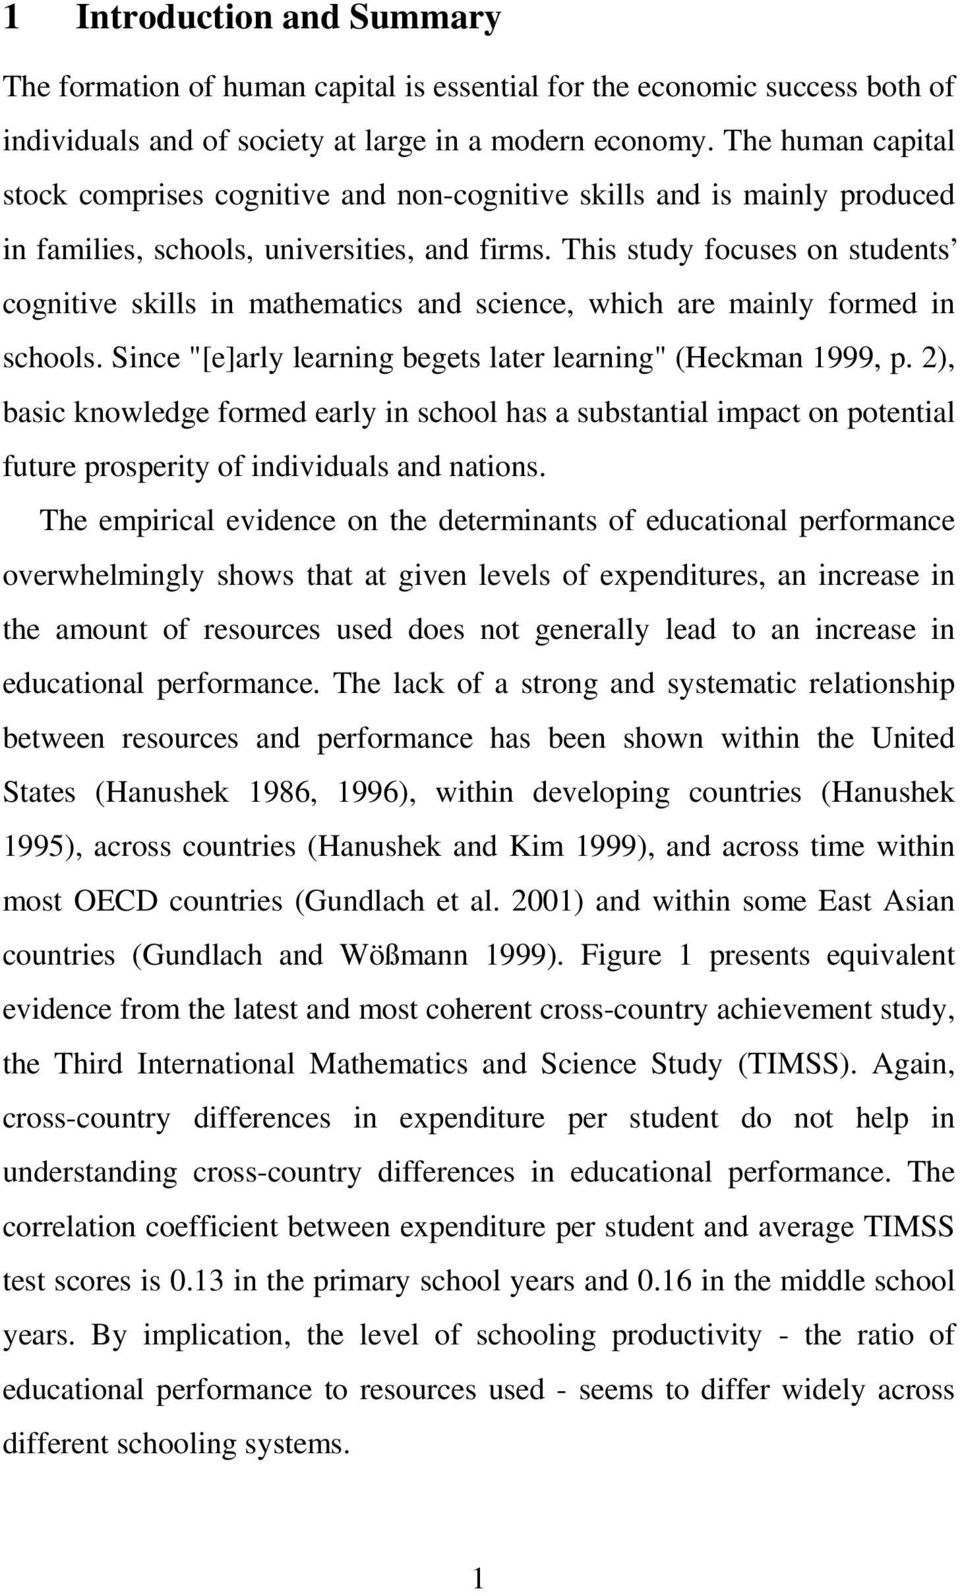 "This study focuses on students cognitive skills in mathematics and science, which are mainly formed in schools. Since ""[e]arly learning begets later learning"" (Heckman 1999, p."